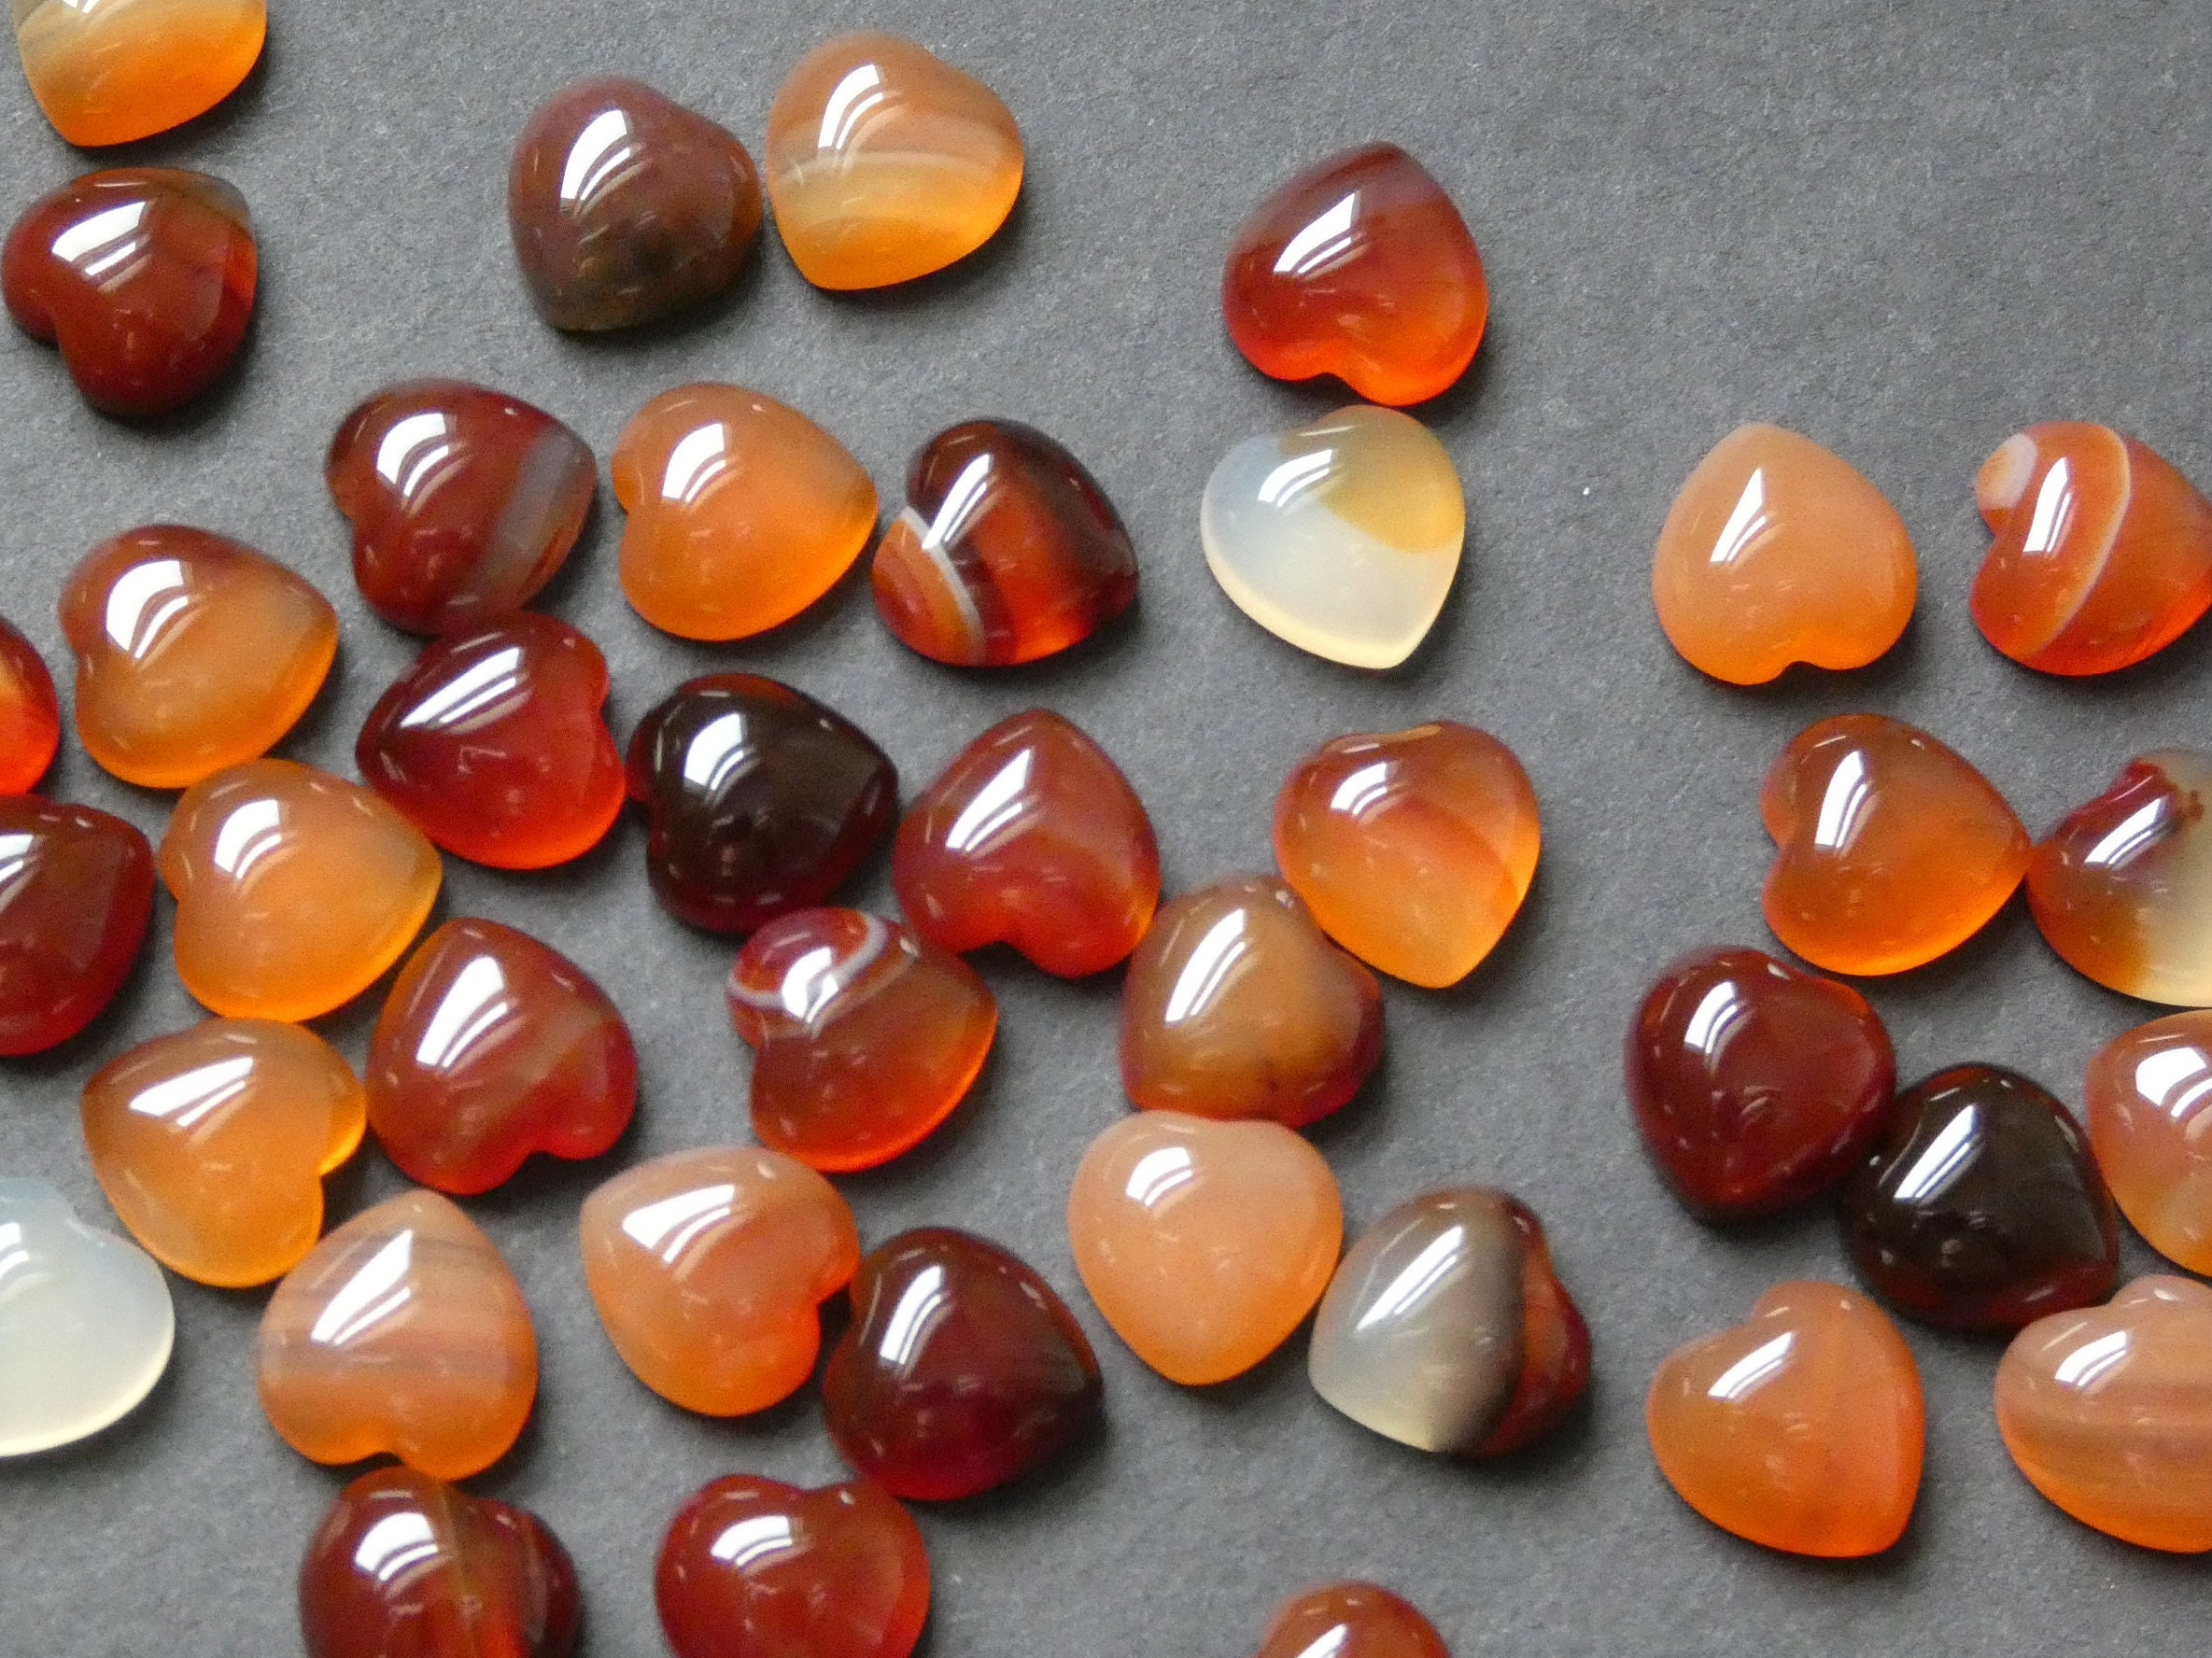 Details about  /Lovely Lot Natural Carnelian 10X14 mm Octagon Faceted Cut Loose Gemstone AB01